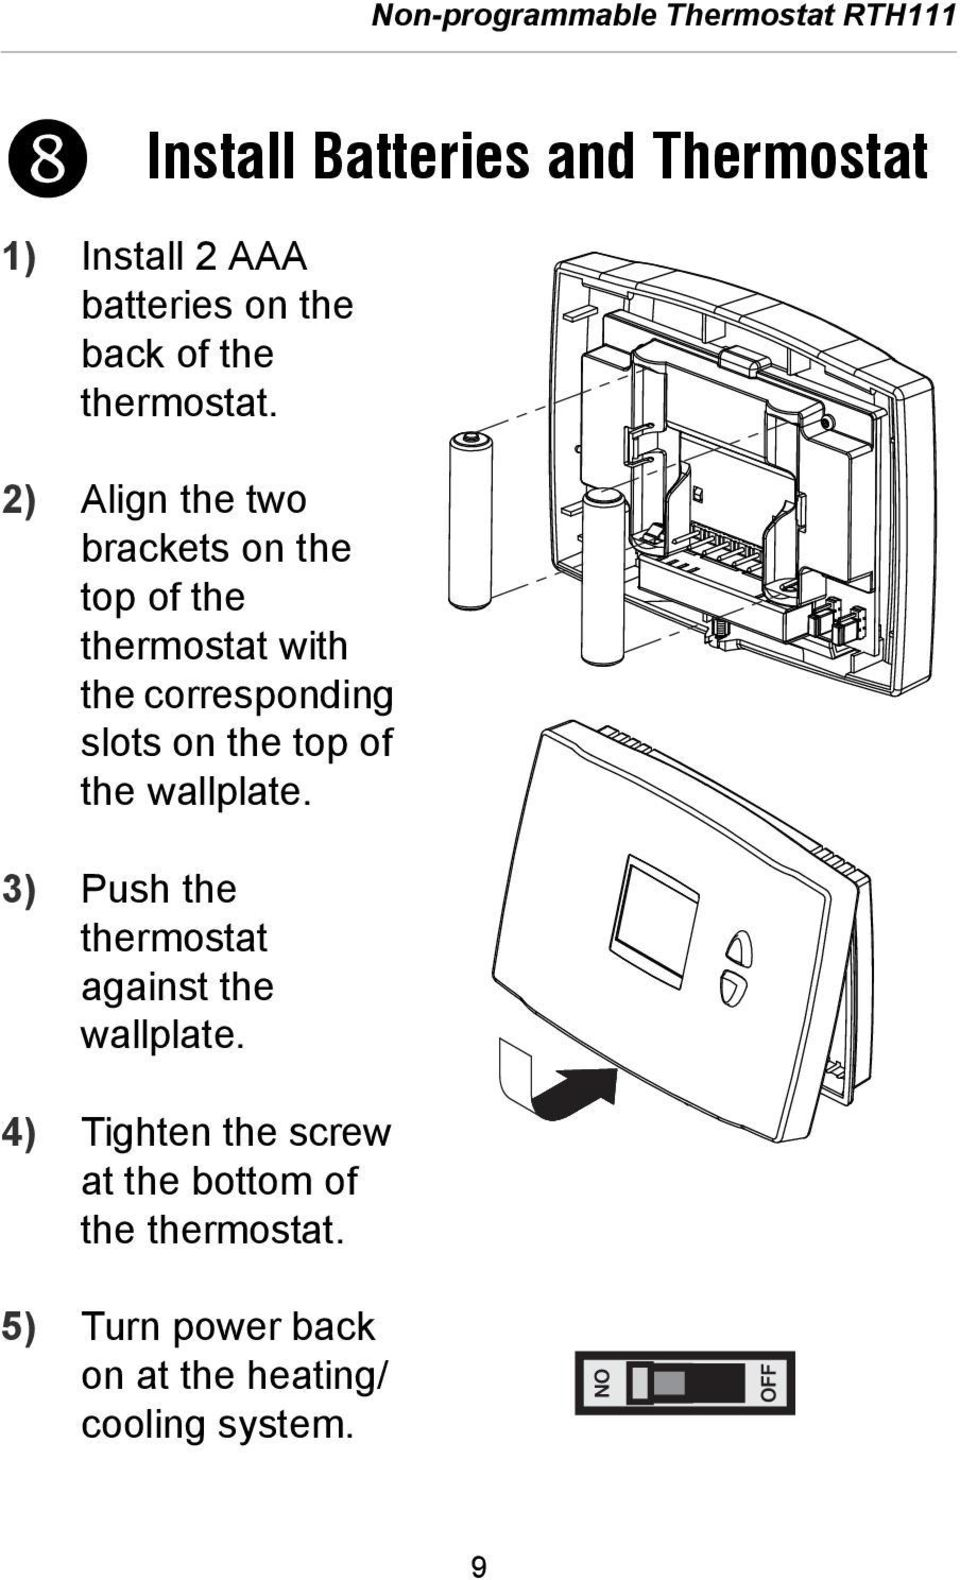 the wallplate. 3) Push the thermostat against the wallplate.